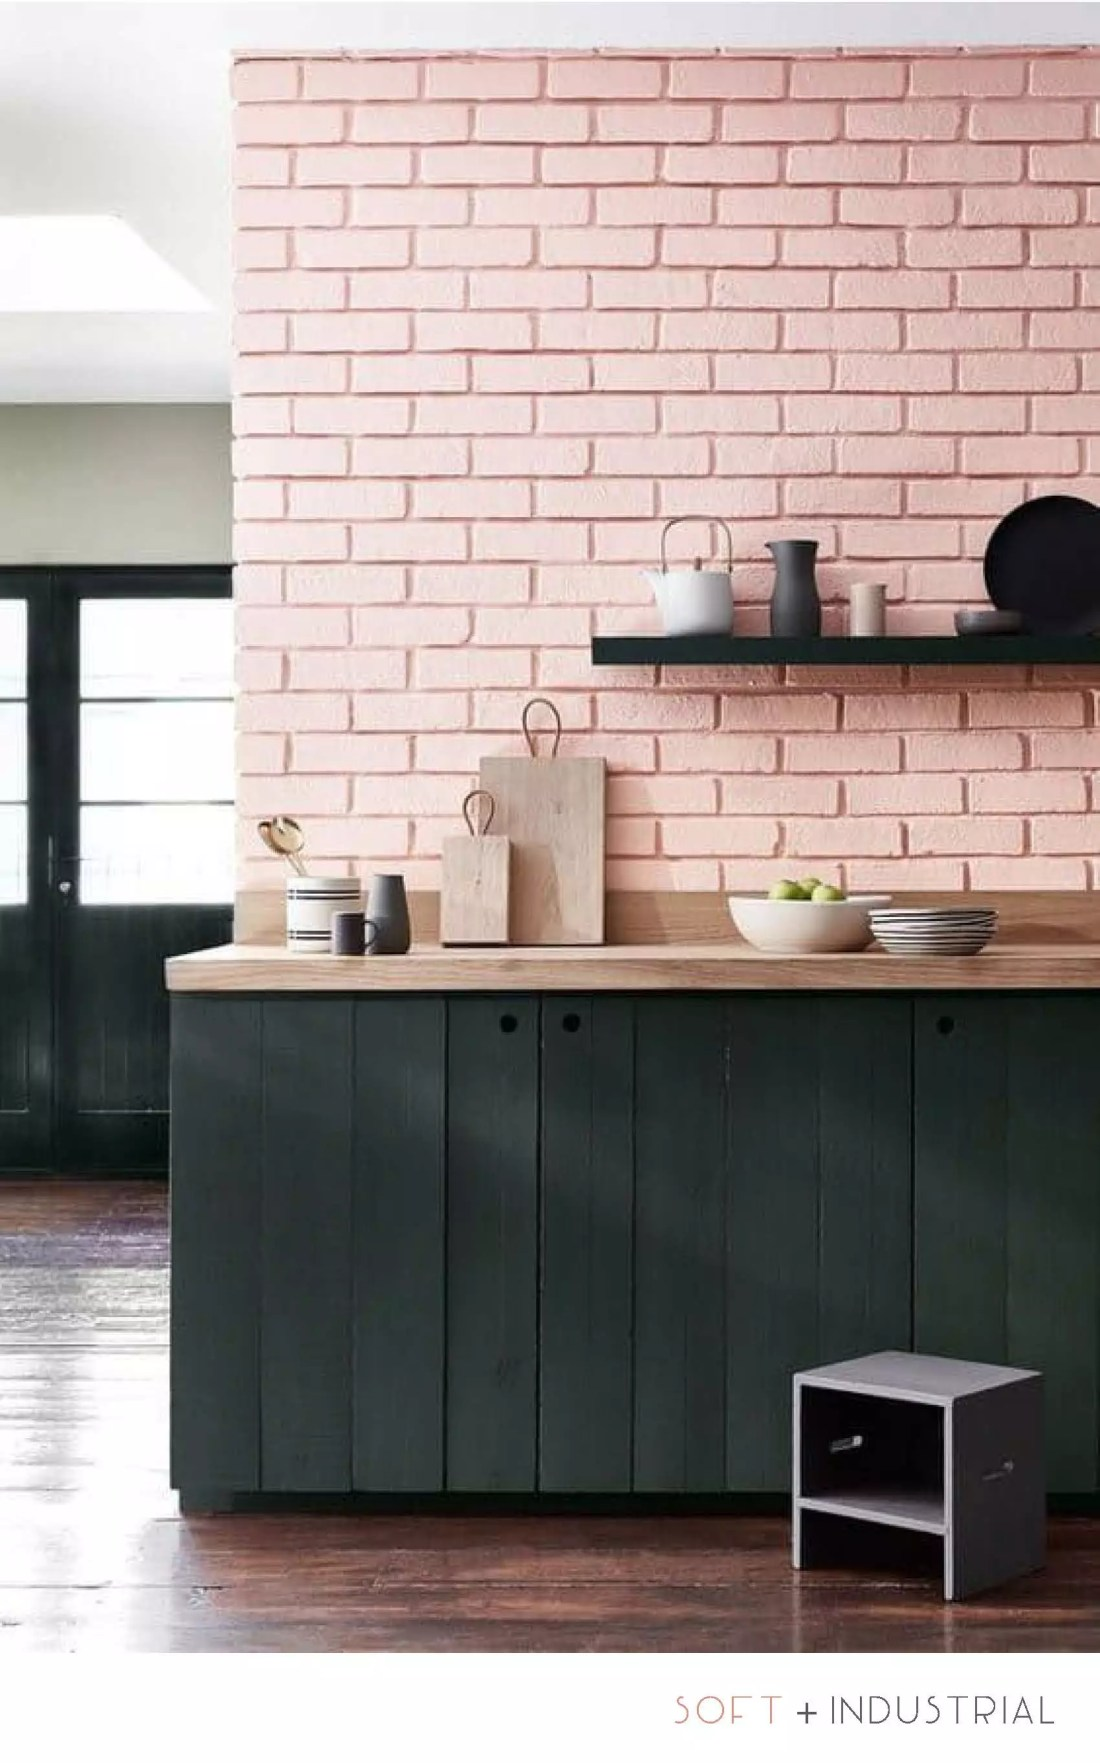 Kitchen Interior Design - Pink Brick Rustic Forest Green Cabinets